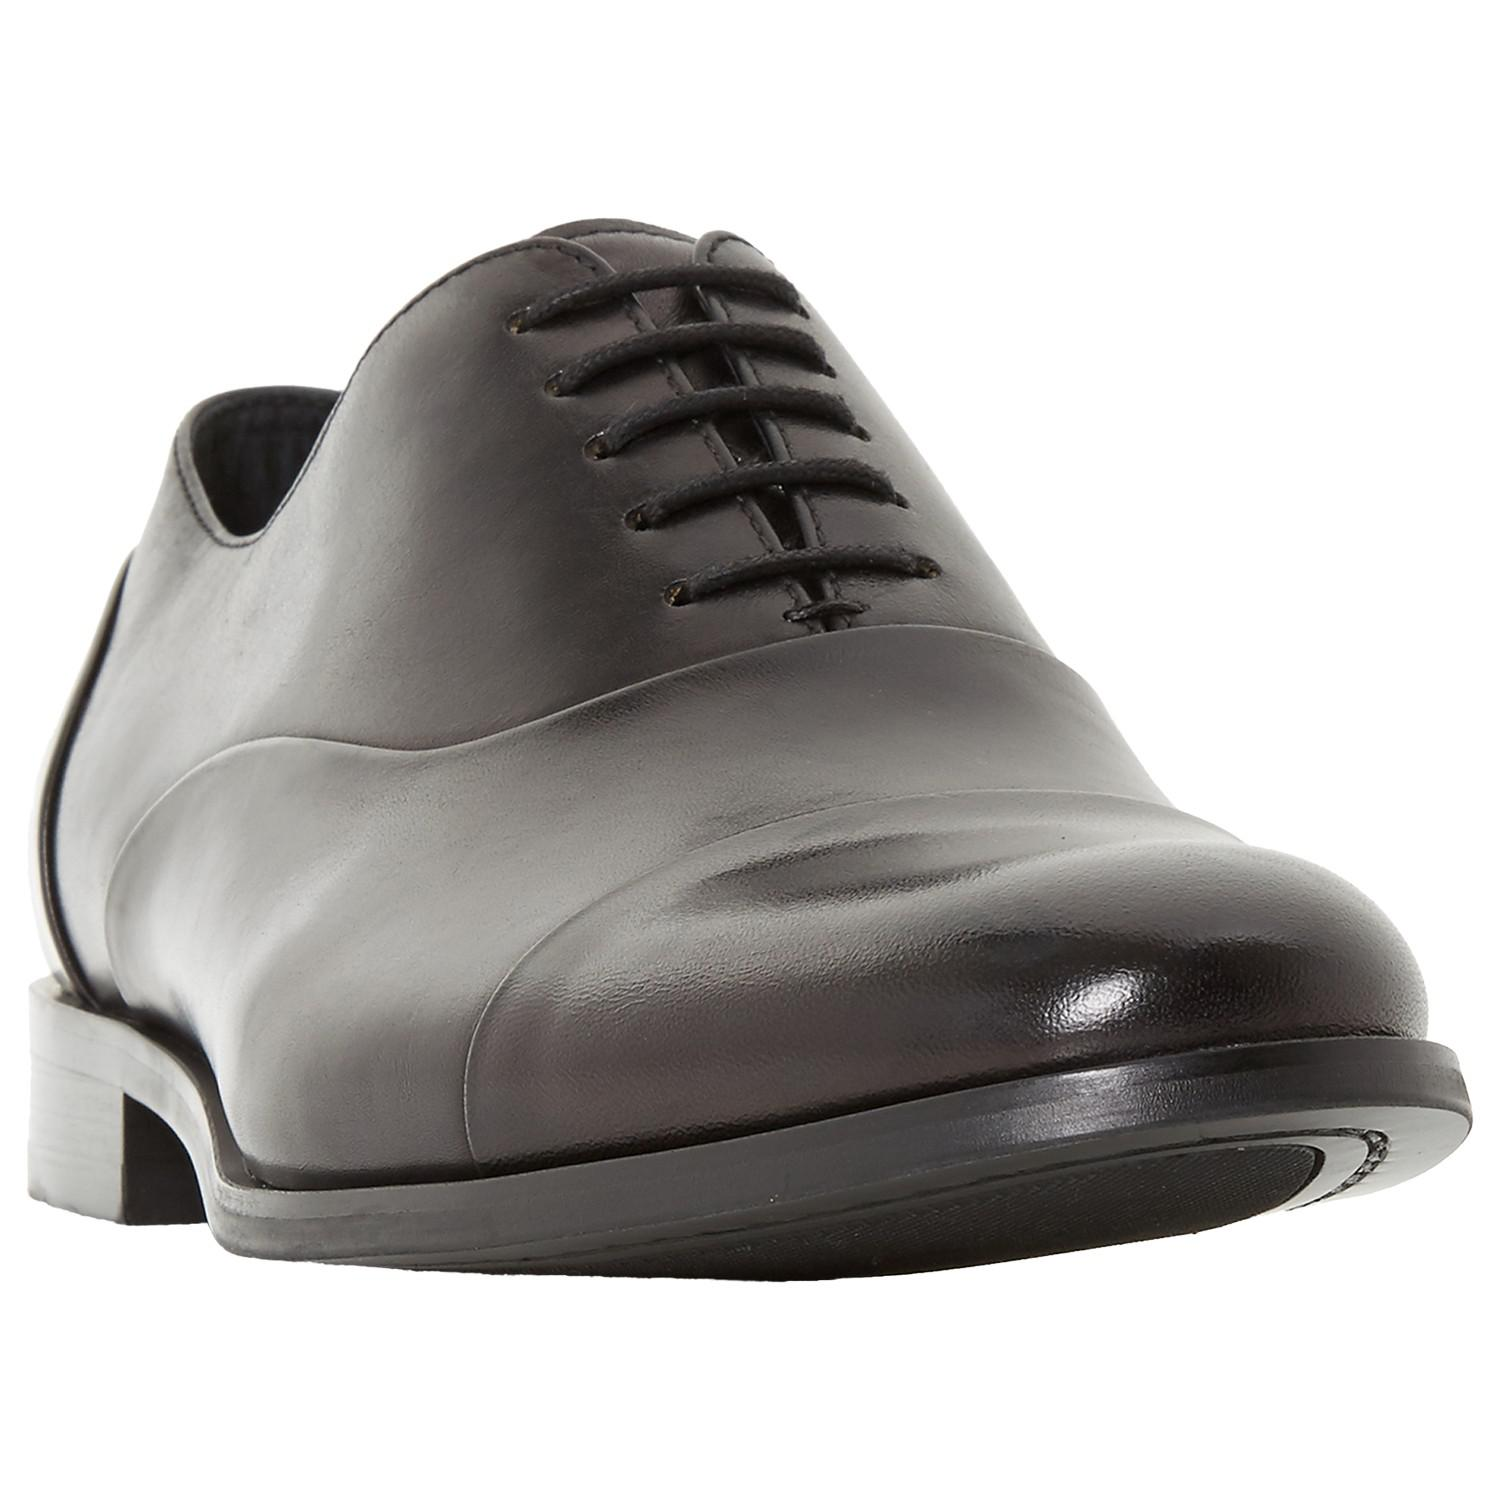 Dune Leather Robb Round Toecap Oxford Shoes in Black for Men